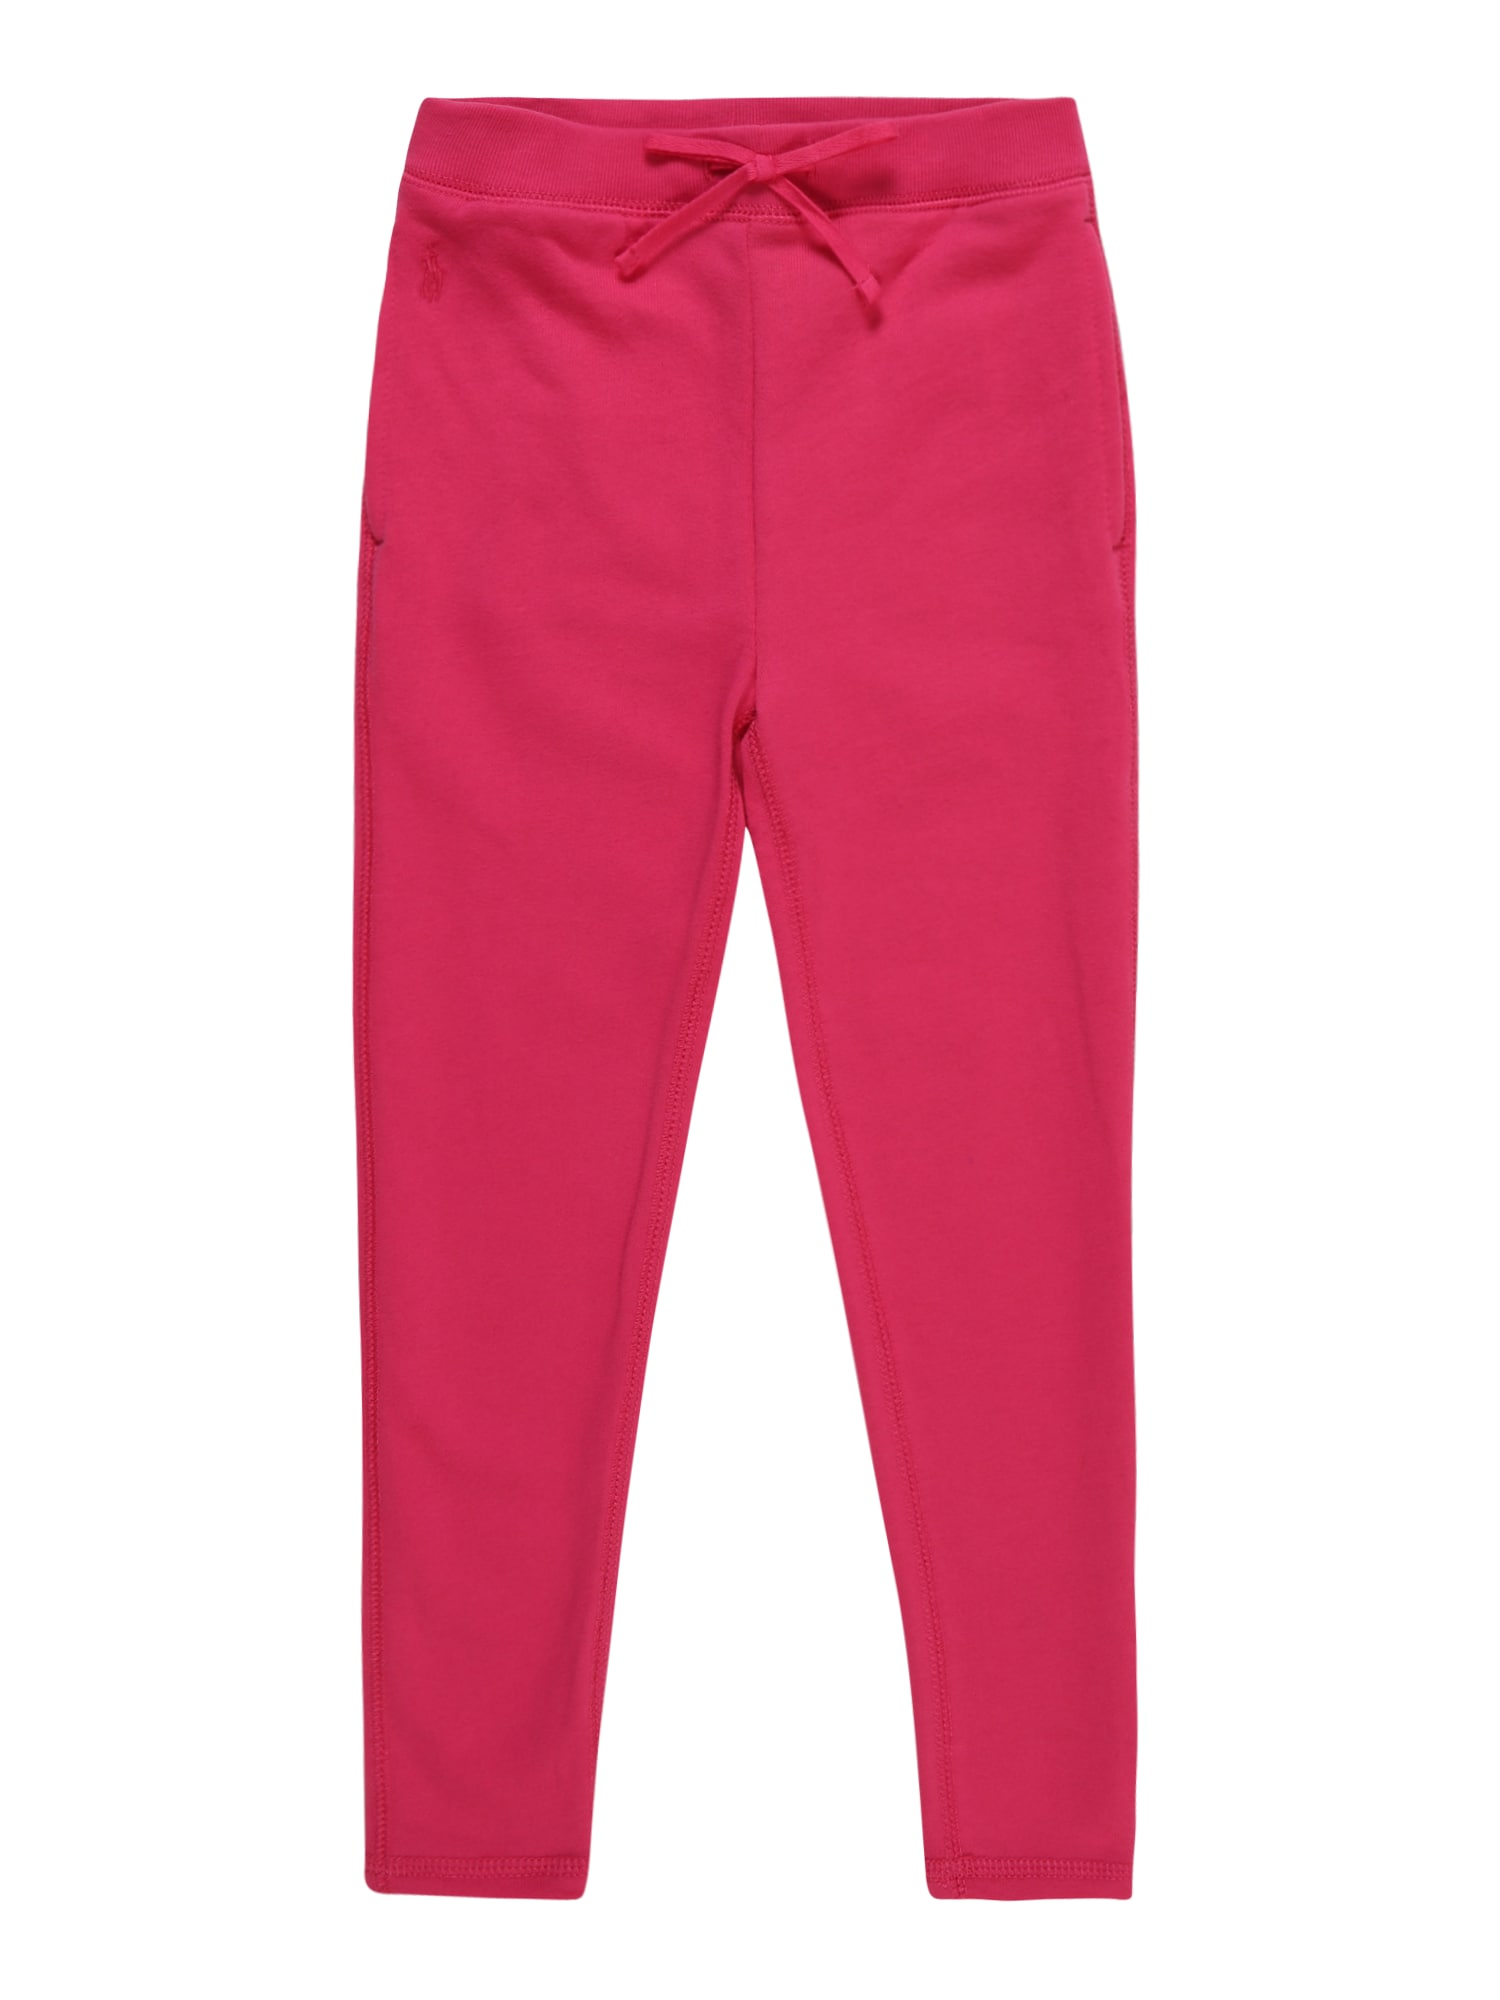 Kalhoty ATLANTIC TERRY-SOLID pink POLO RALPH LAUREN